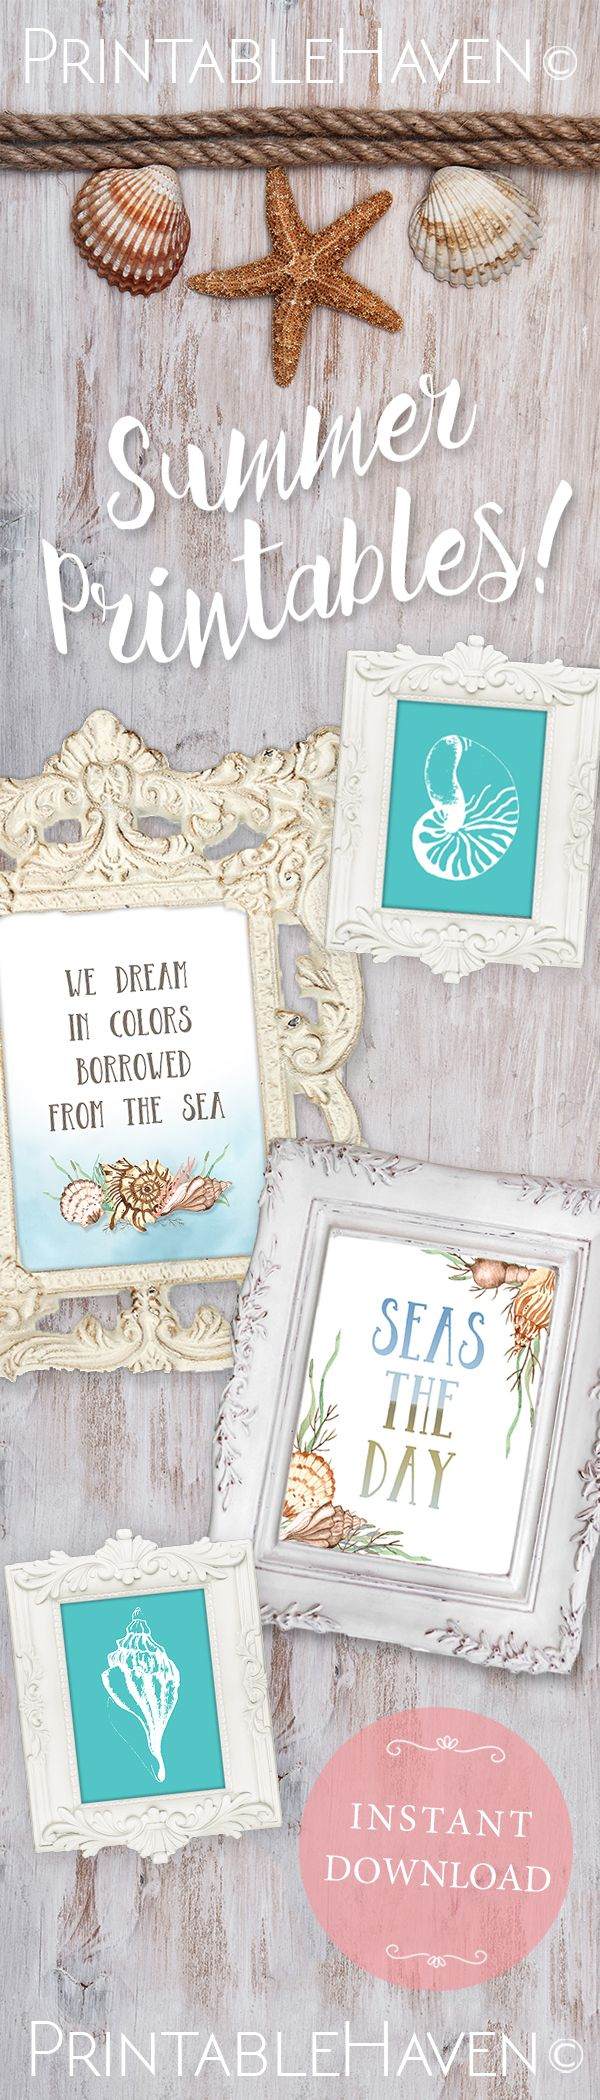 Fun printables for the summer! Beach and shell themed printables, find them here: https://www.etsy.com/shop/PrintableHaven